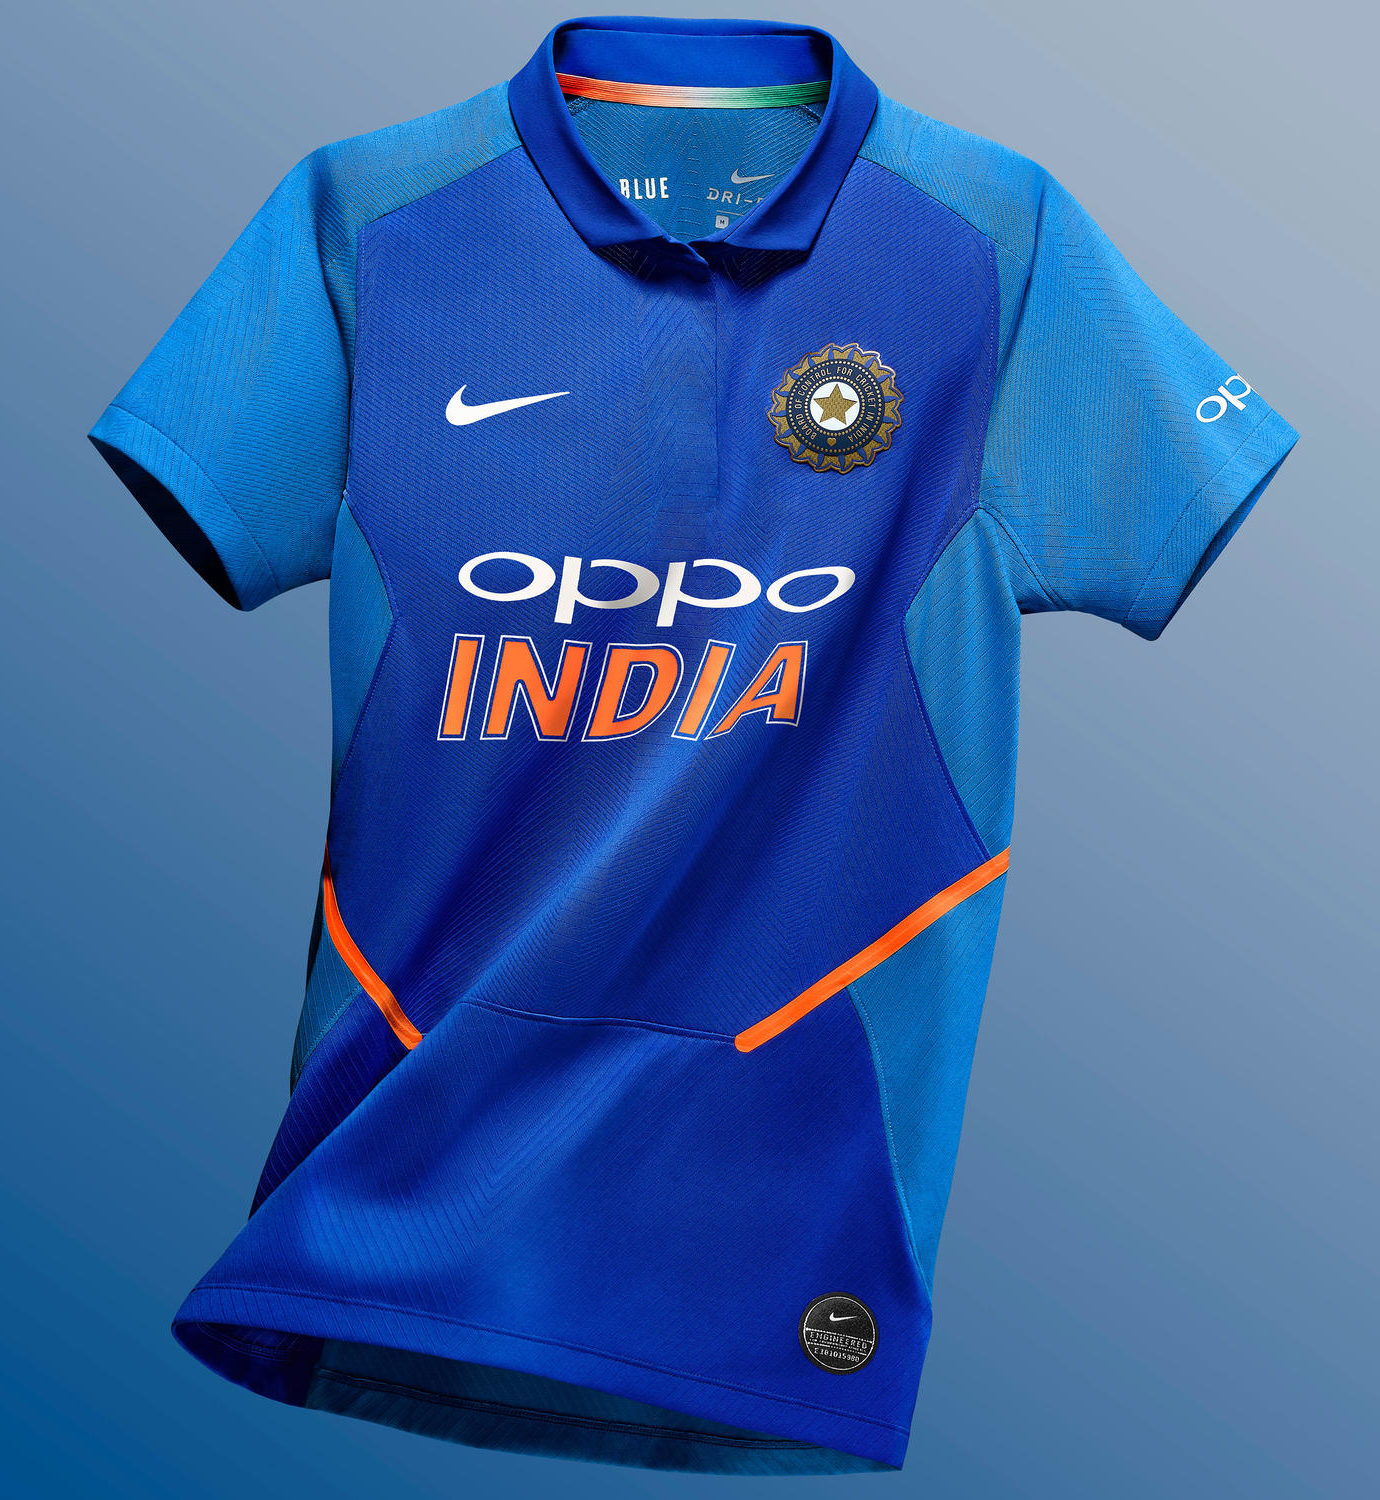 Indian Team Jersey for ICC Cricket World Cup 2019